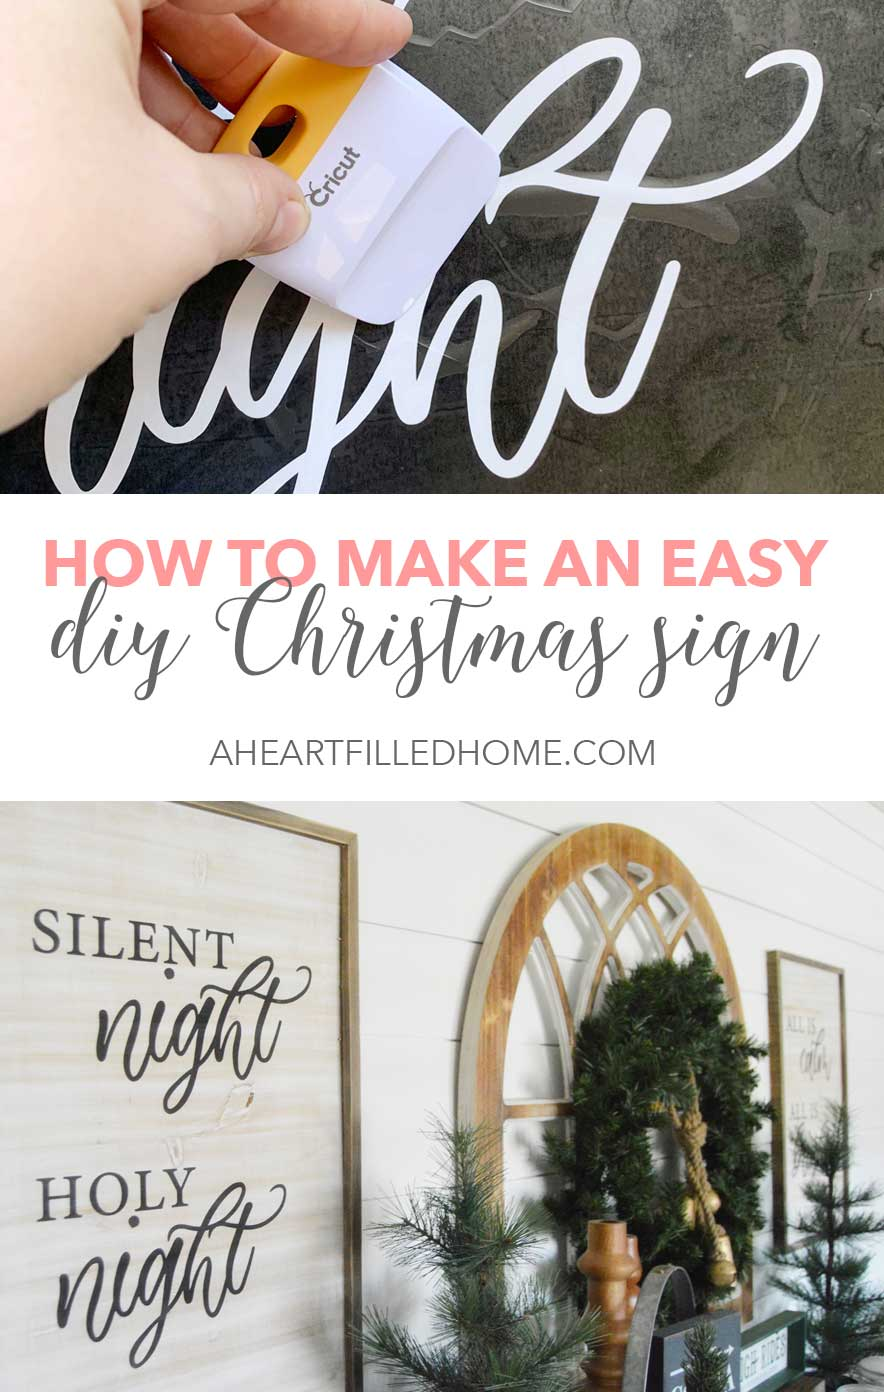 Easy Diy Christmas Sign Free Svg File Free Printable A Heart Filled Home Diy Home Decor